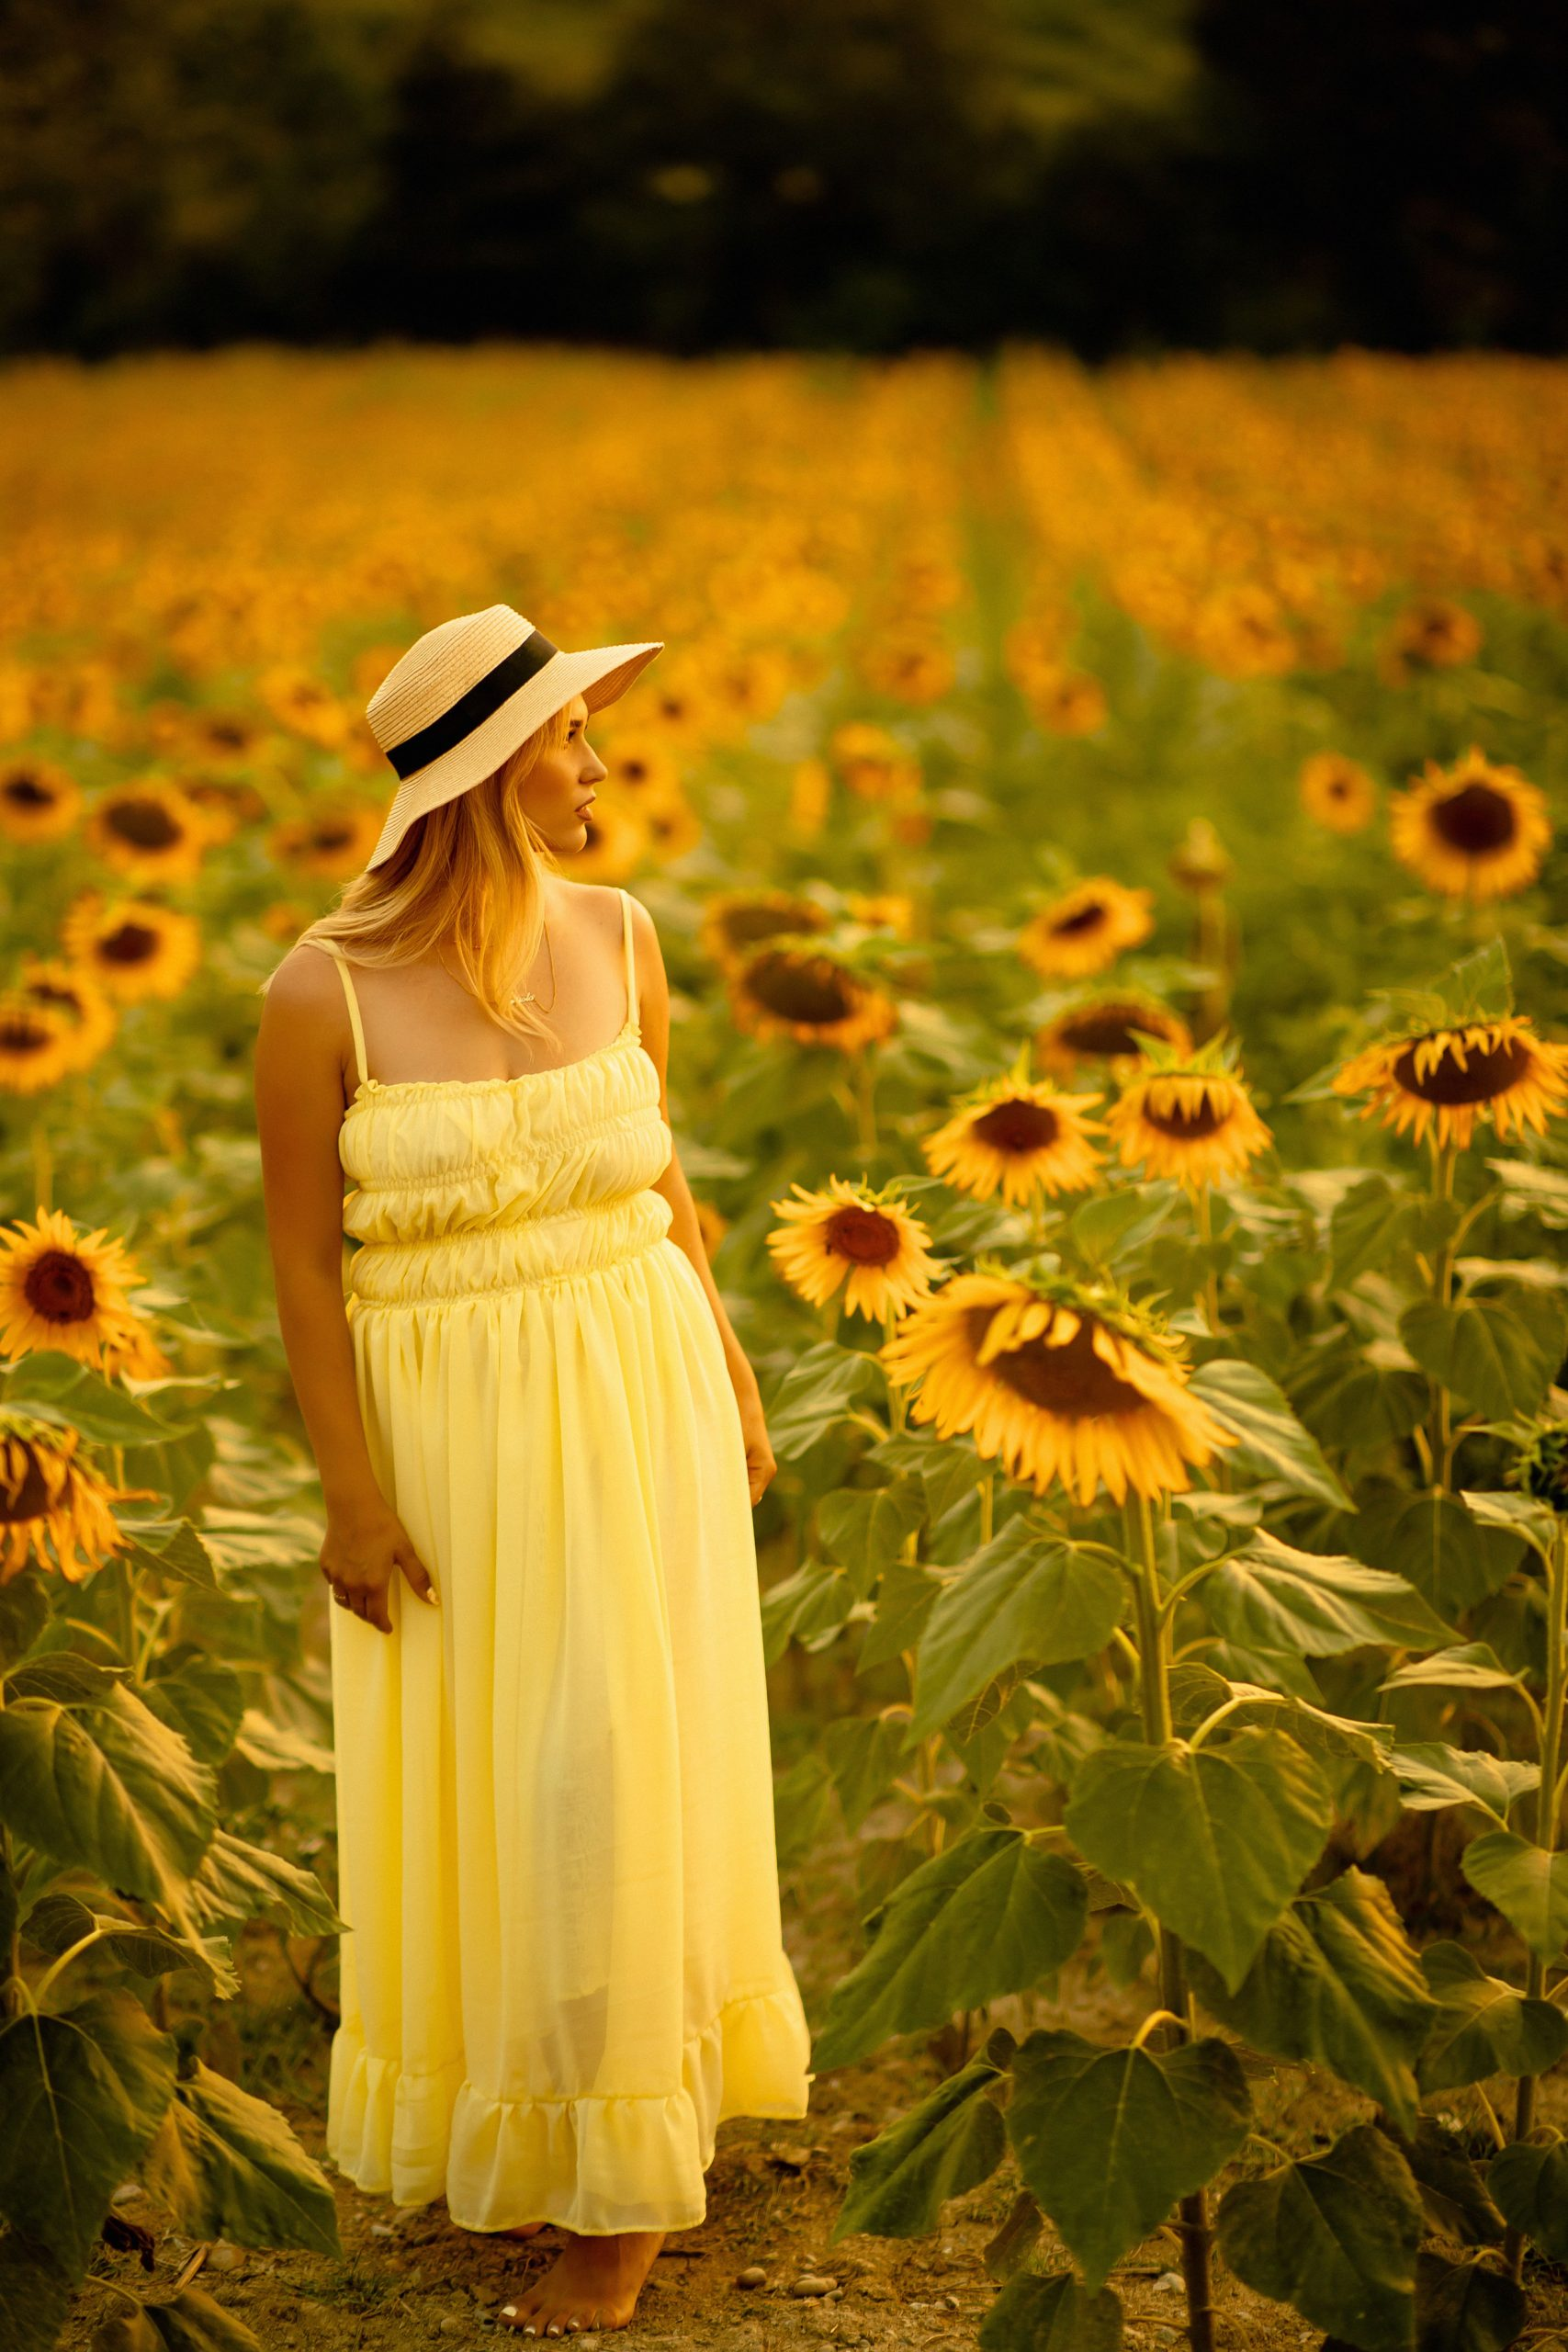 Girl posing in a sunflower field with a yellow dress